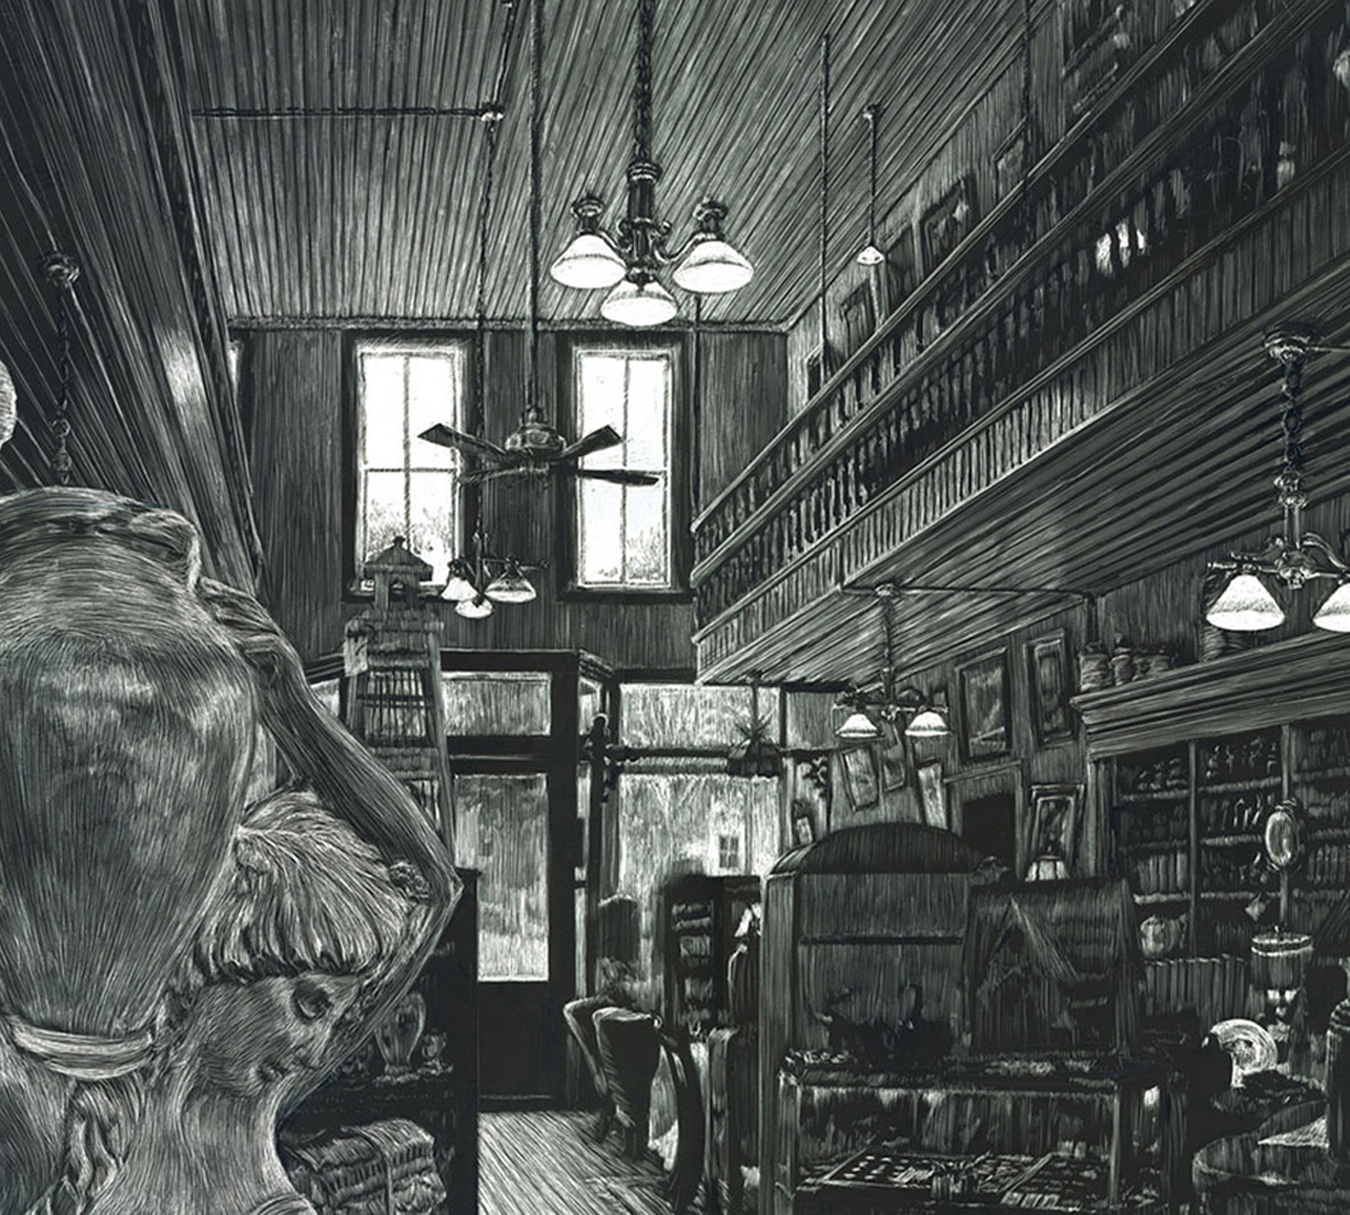 scratchboard drawing of antique store